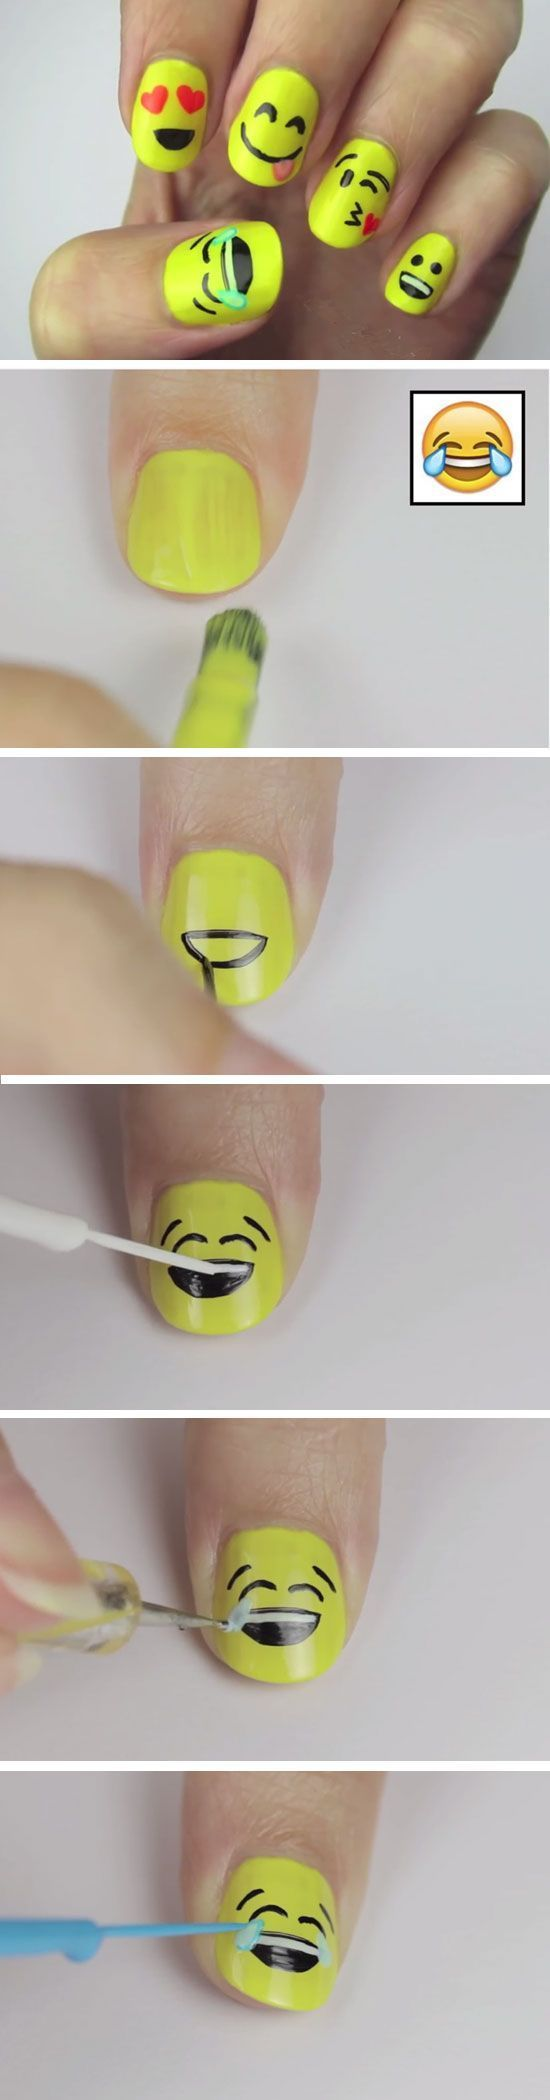 22 DIY Back to School Nails for Kids | School nails, Emoji nails and ...